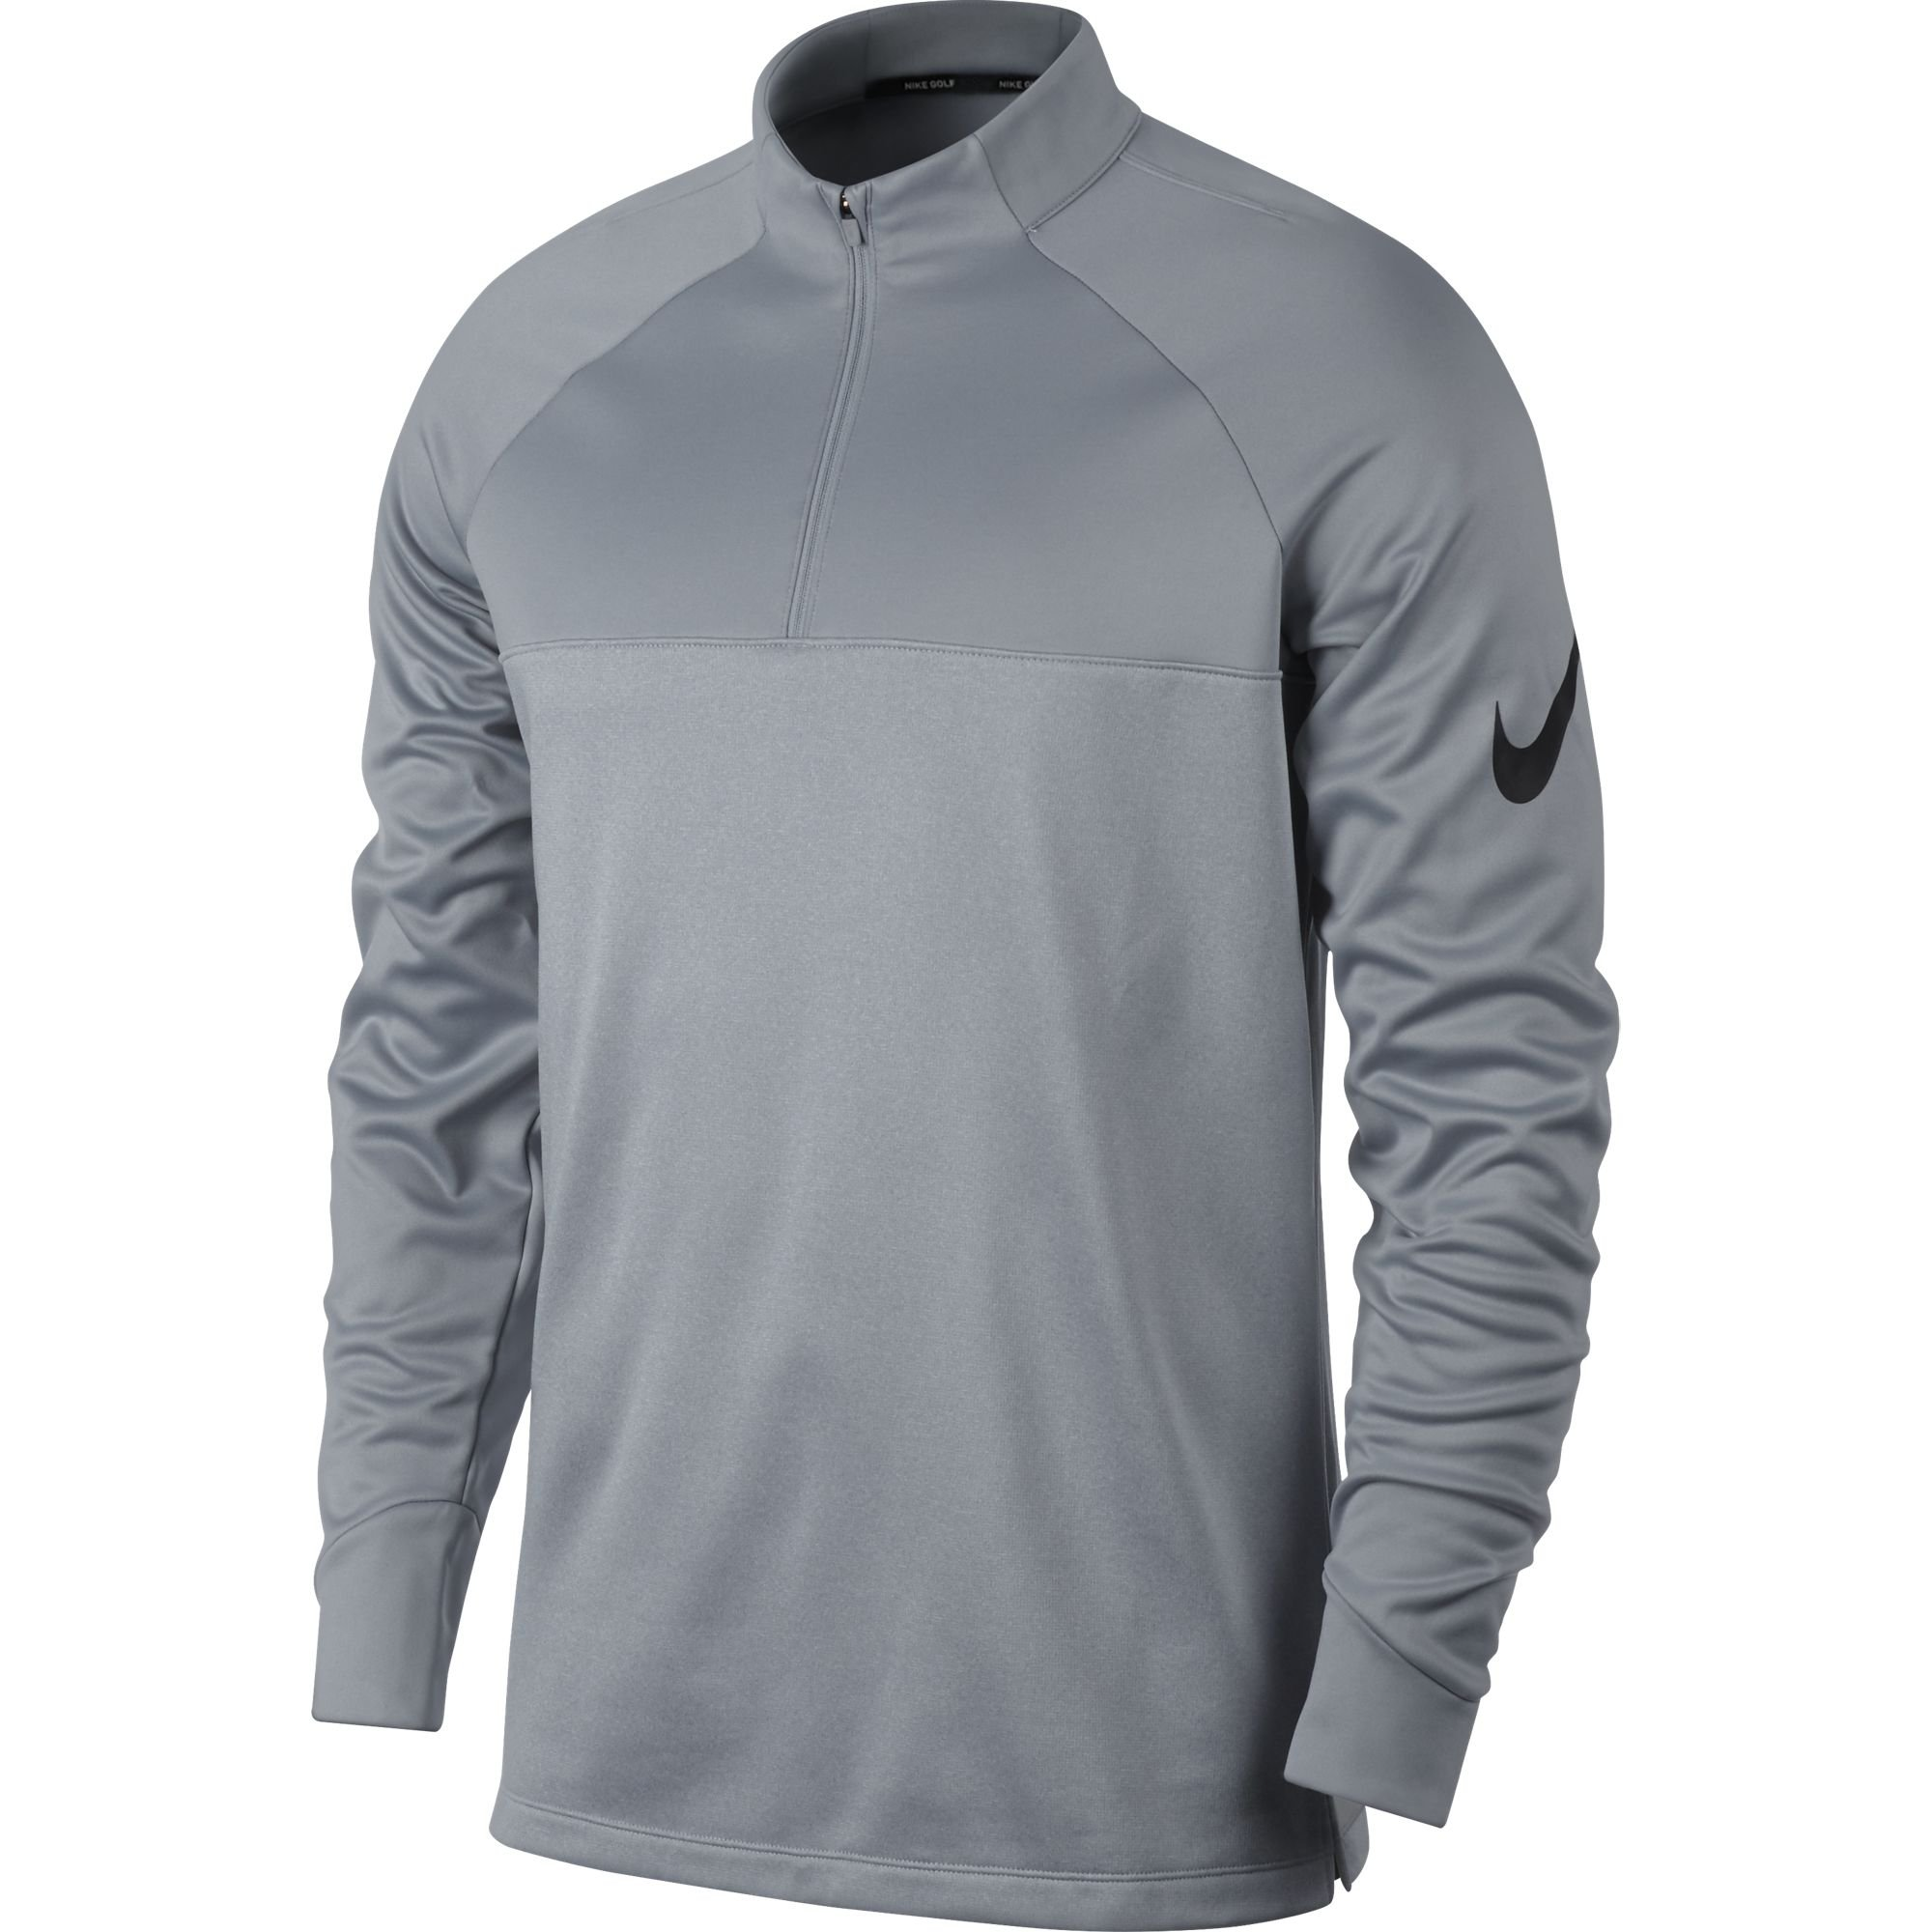 Nike Therma Fit Top Half Zip Core Golf Pullover 2017 Wolf Gray/Dark Gray/Heather/Black X-Large